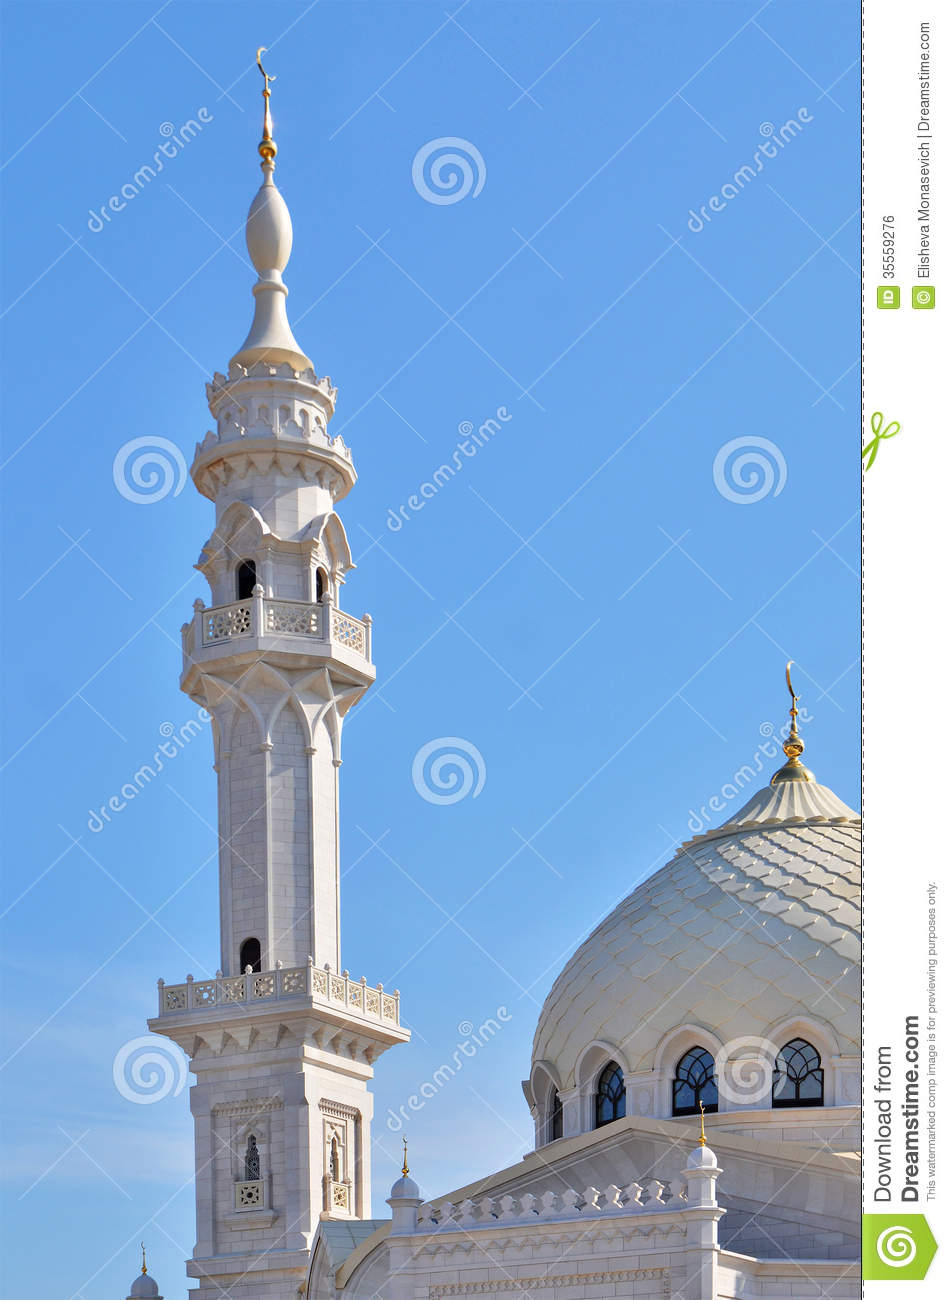 Minaret Of Mosque In Tatarstan, Russia Royalty Free Stock Image.